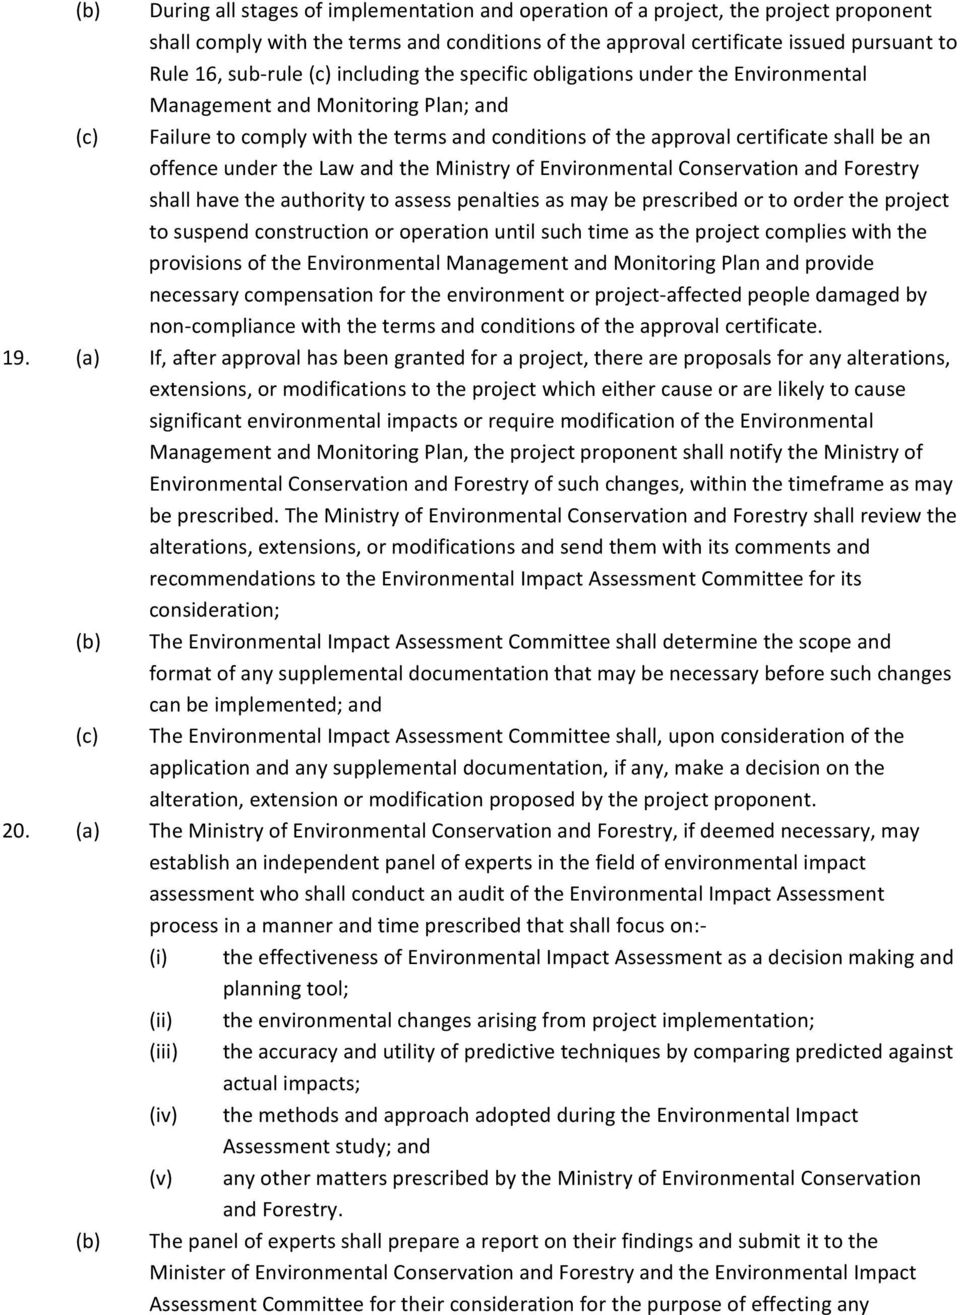 under the Law and the Ministry of Environmental Conservation and Forestry shall have the authority to assess penalties as may be prescribed or to order the project to suspend construction or